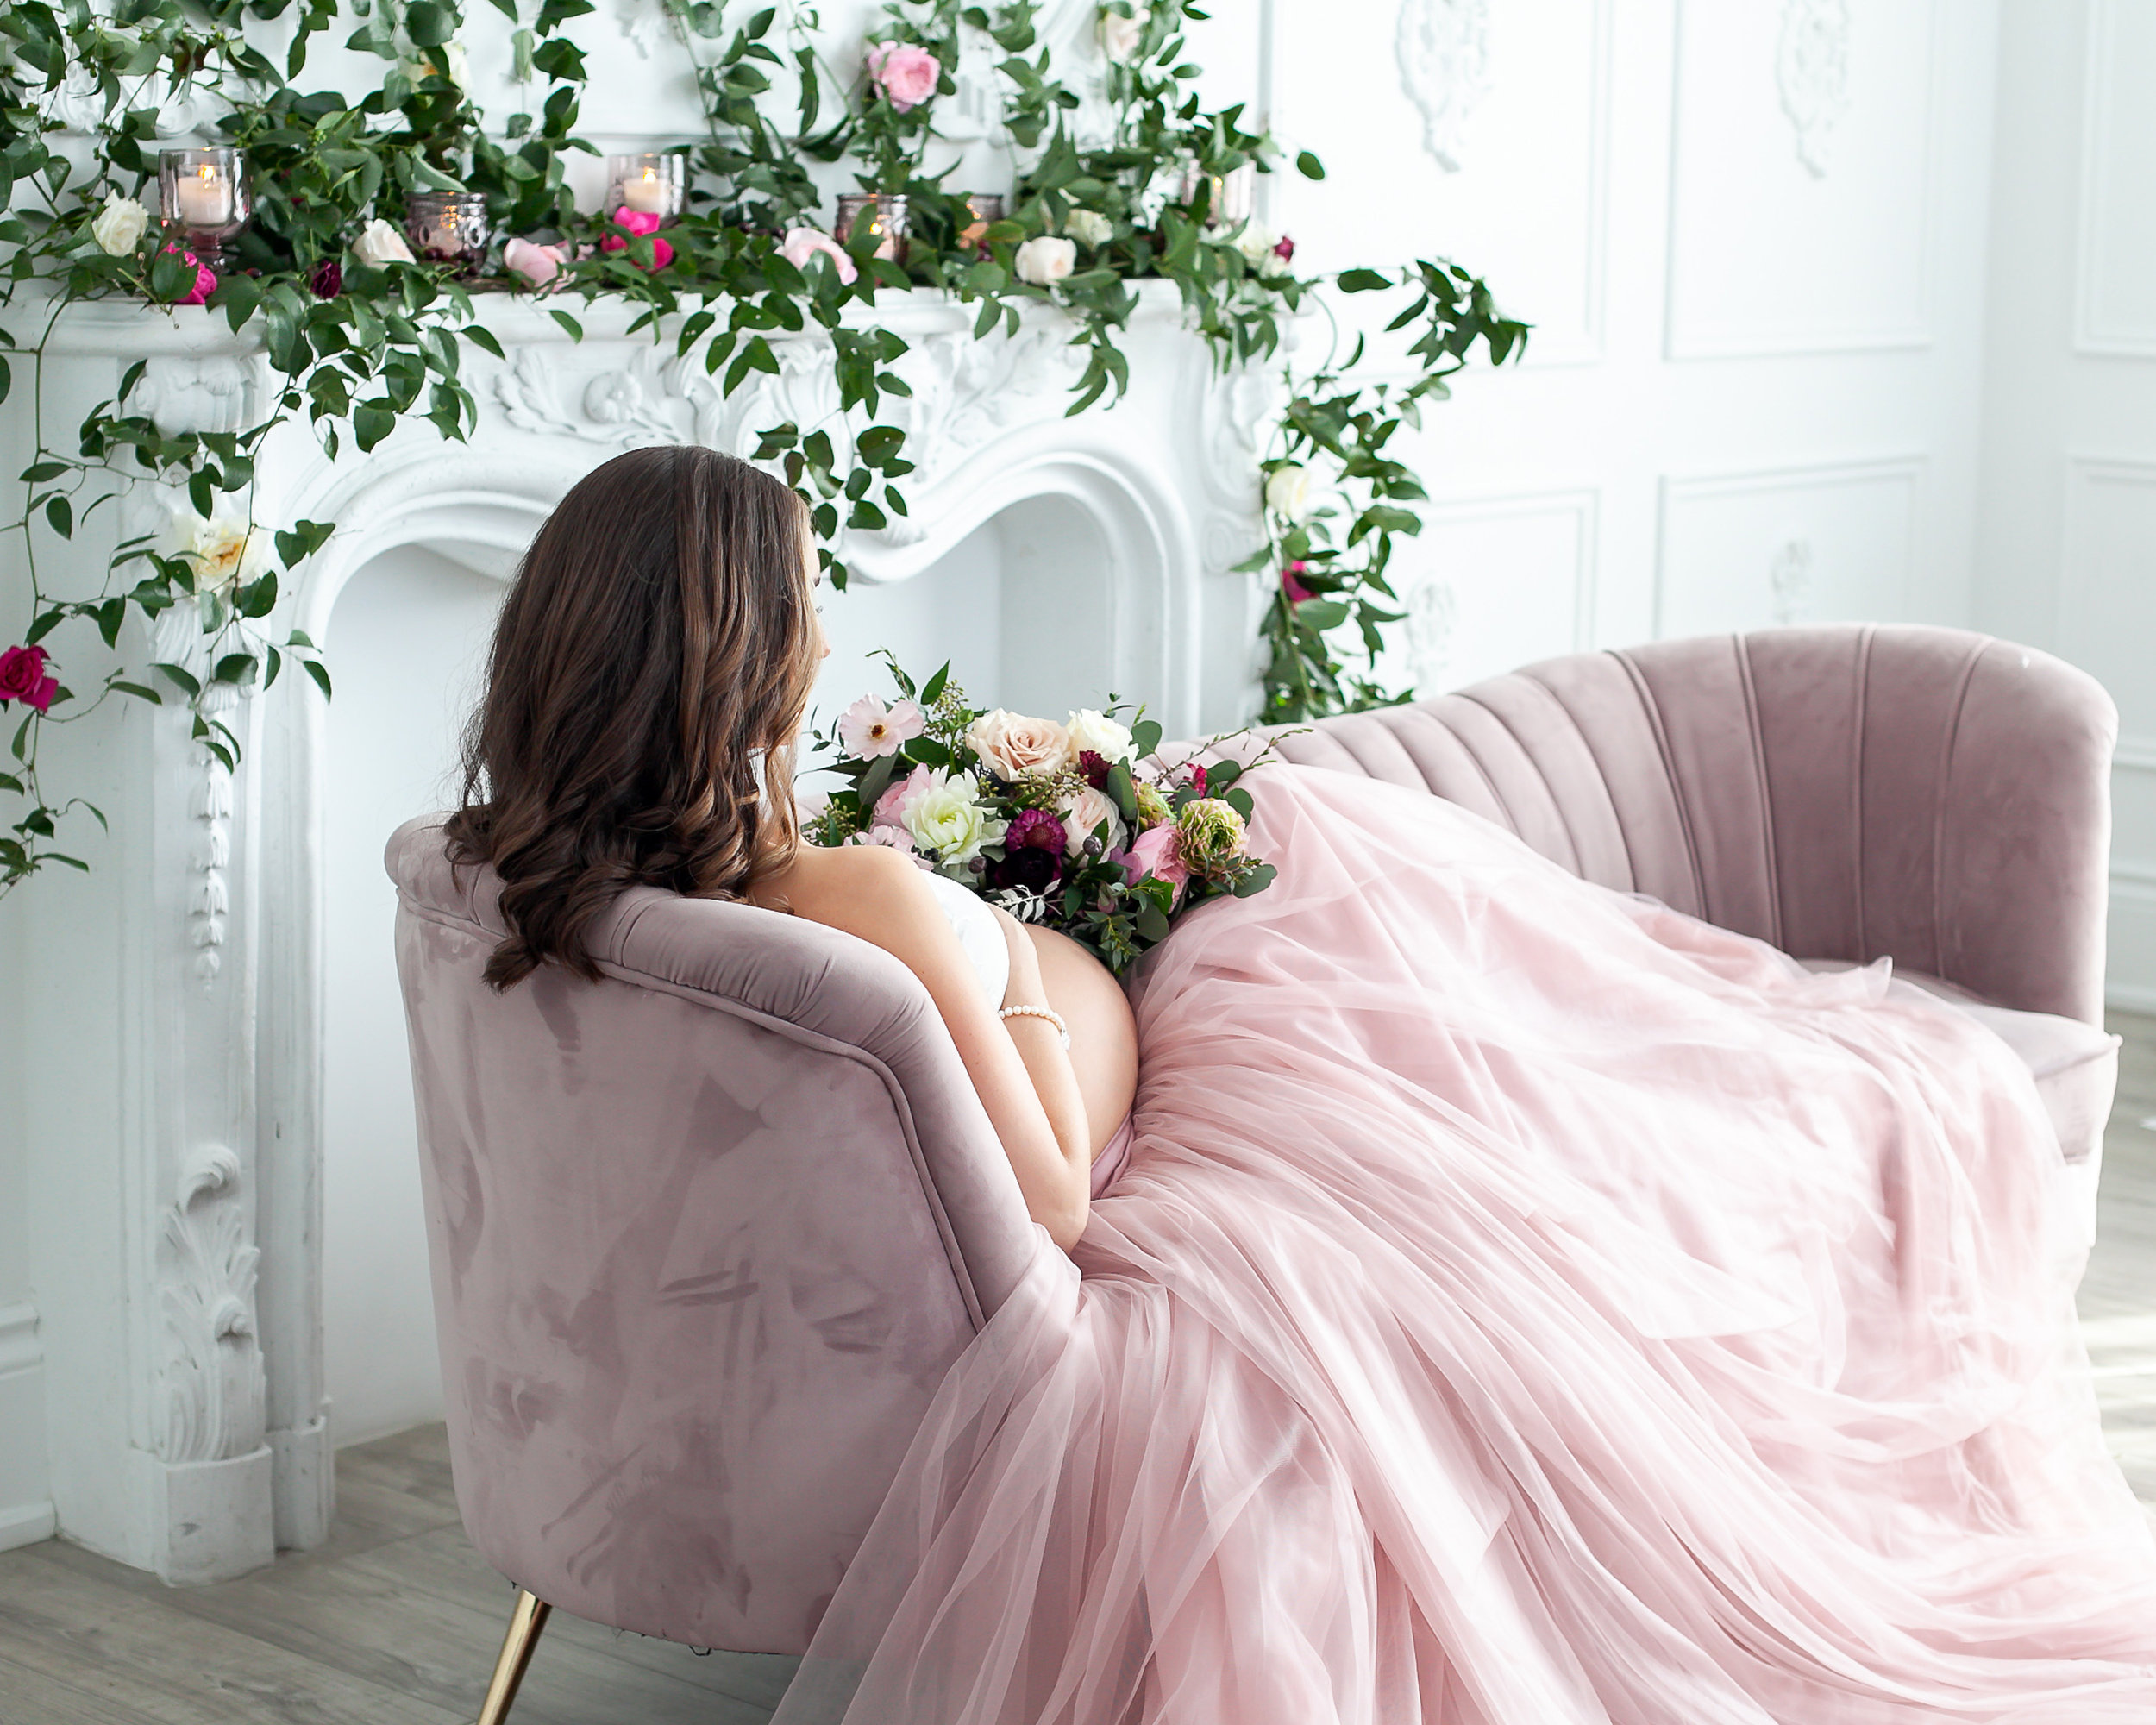 Oshawa_Mint_Room-Studios_Luxury_Floral_Maternity_Event_Photographer_Petra_King_Photography